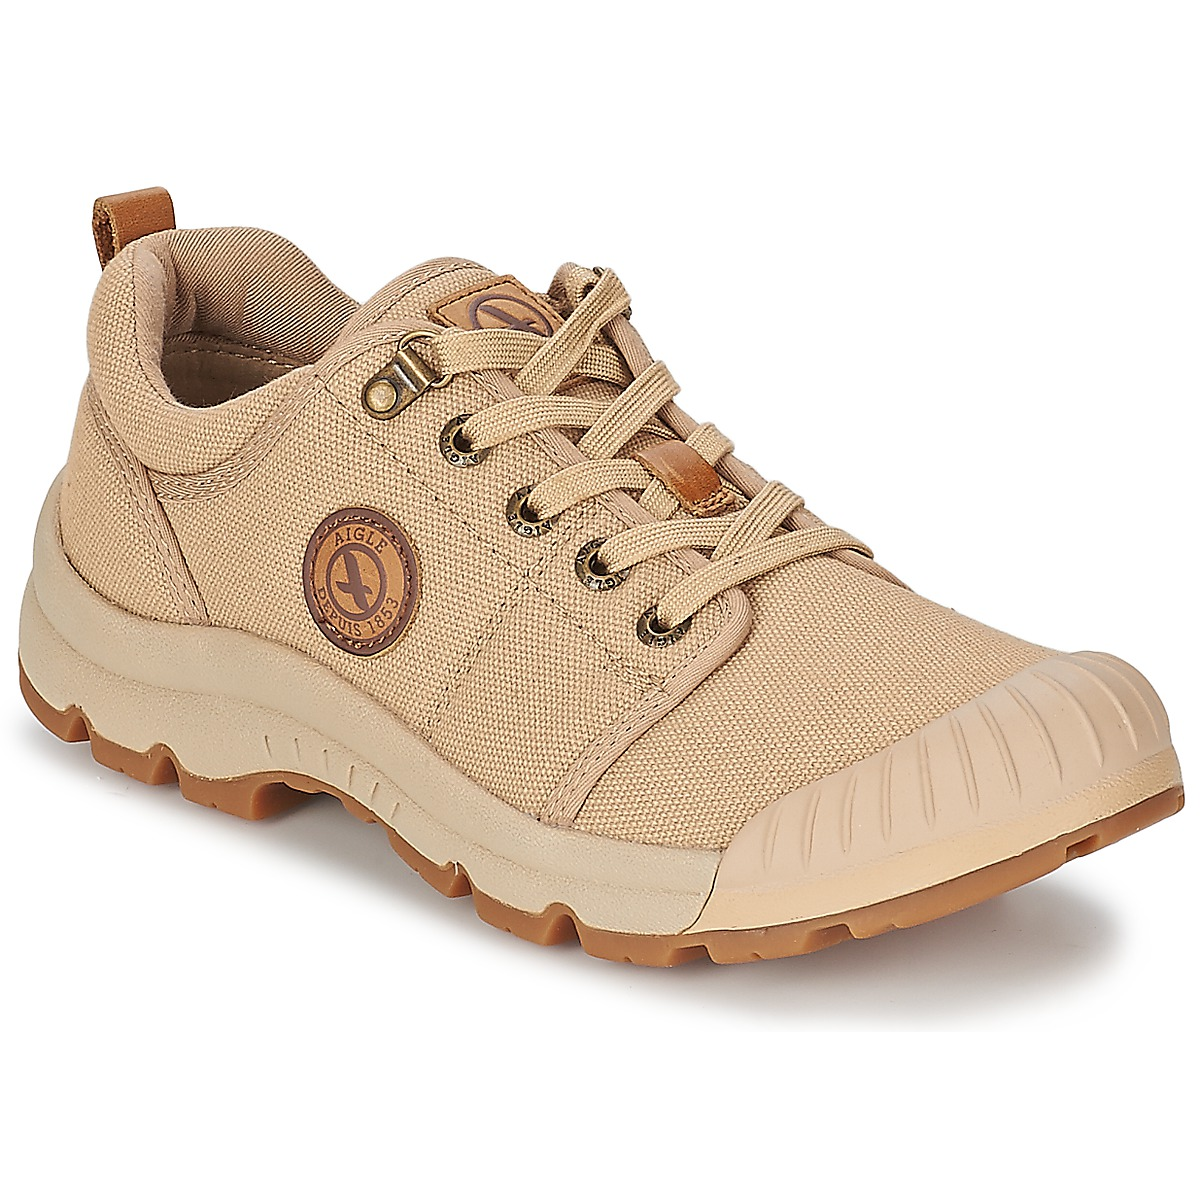 Aigle TENERE LIGHT LOW CVS PIASEK